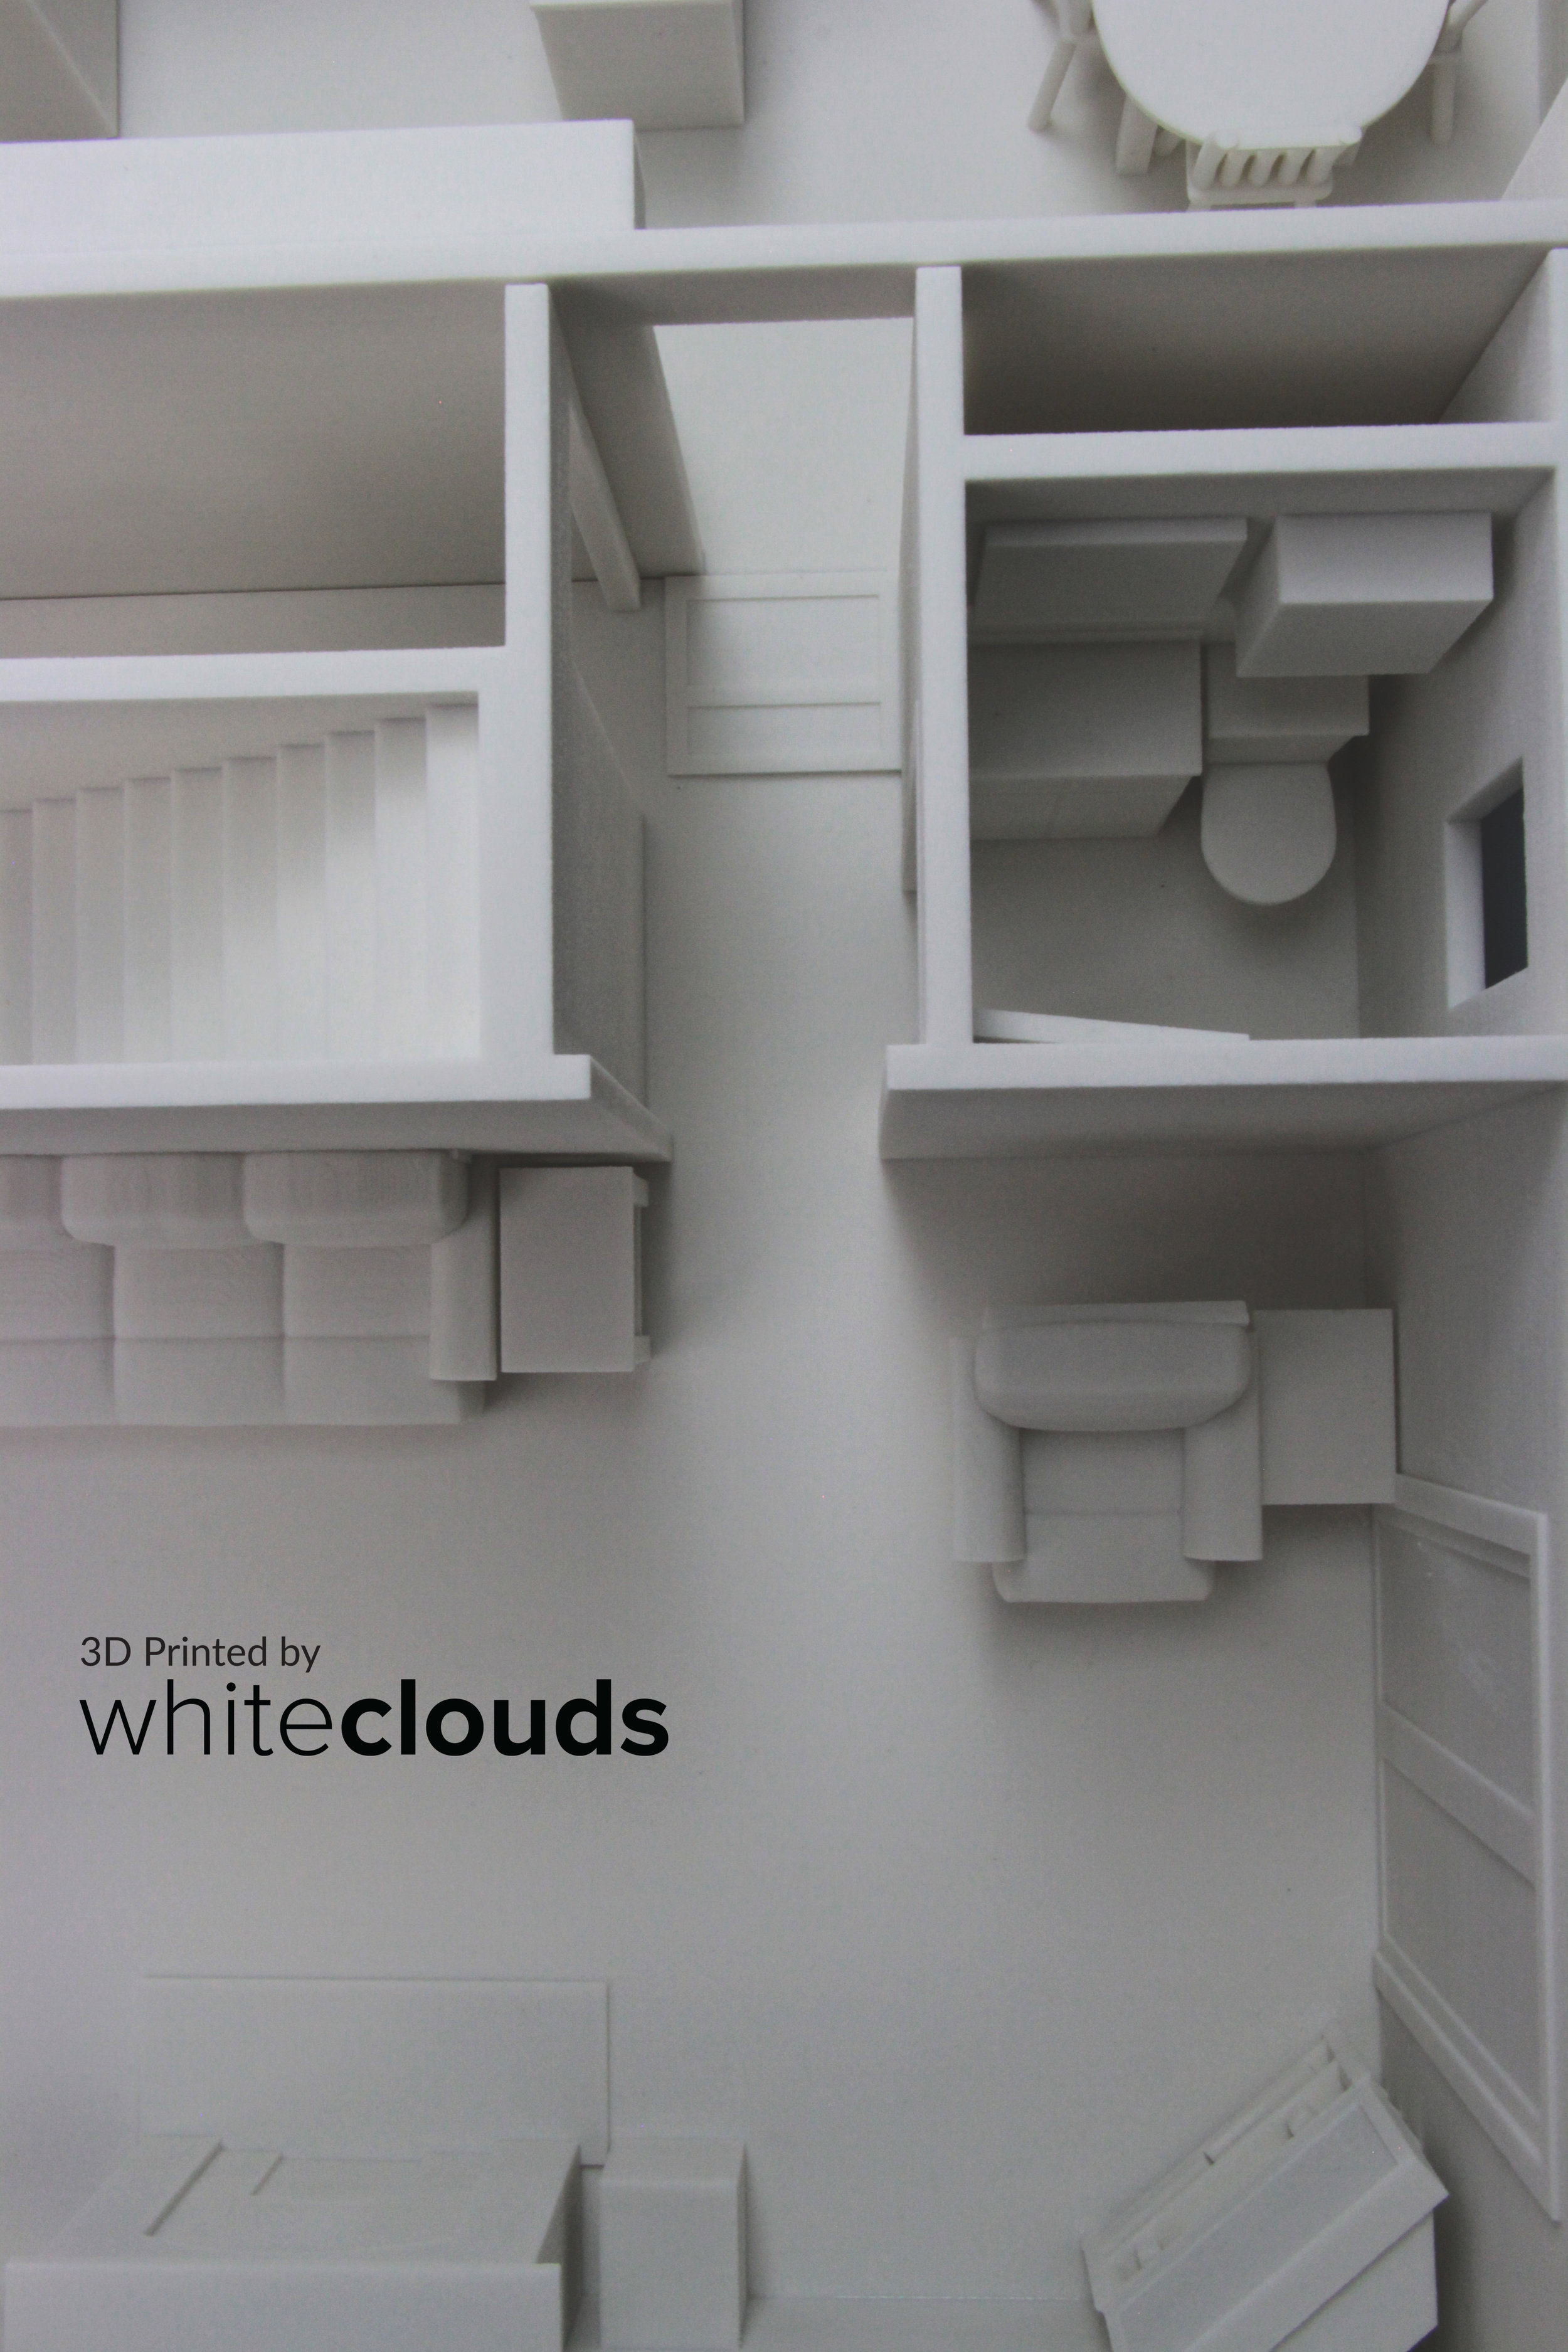 3D-Printed-WhiteClouds-Trial-House-Architecture-Trial-House-Website-2.jpg